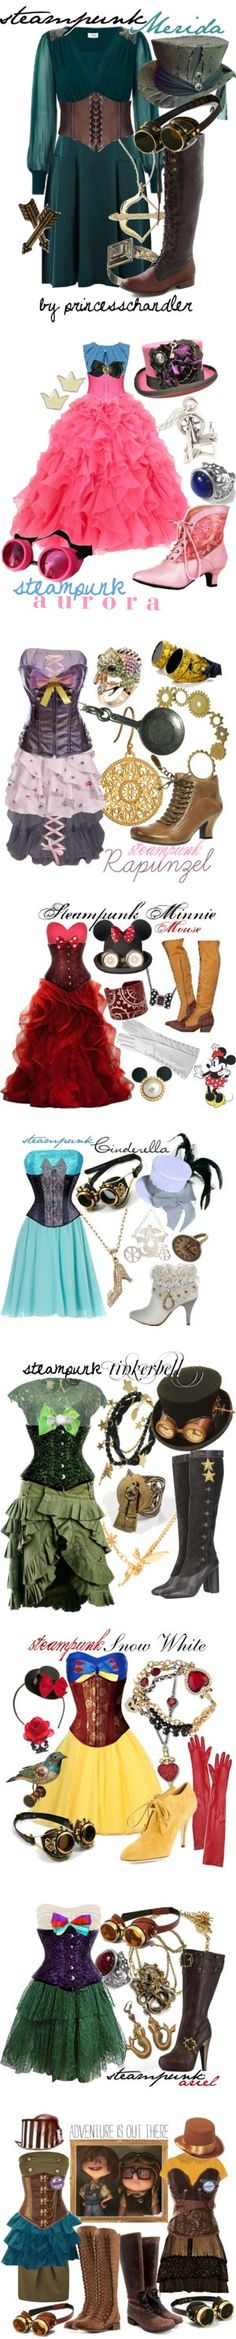 Disney Steampunk by princesschandler on Polyvore featuring Oasis, Sydney Evan, Alexis Bittar, Warehouse, Welder, Tarina Tarantino, character, disney, princess and sleeping beauty